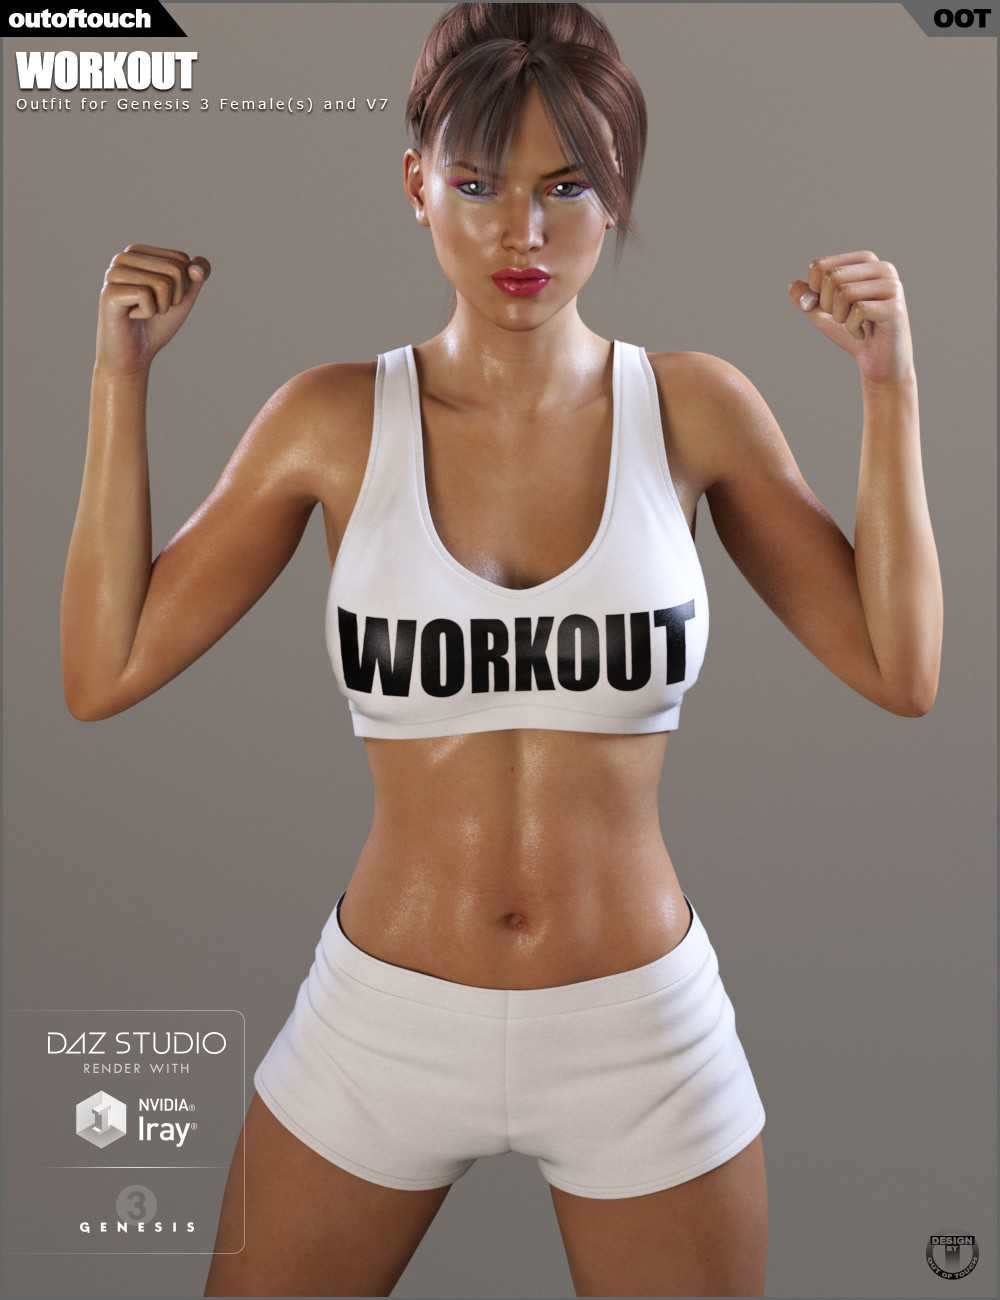 Workout Outfit for Genesis 3 Female(s) V7